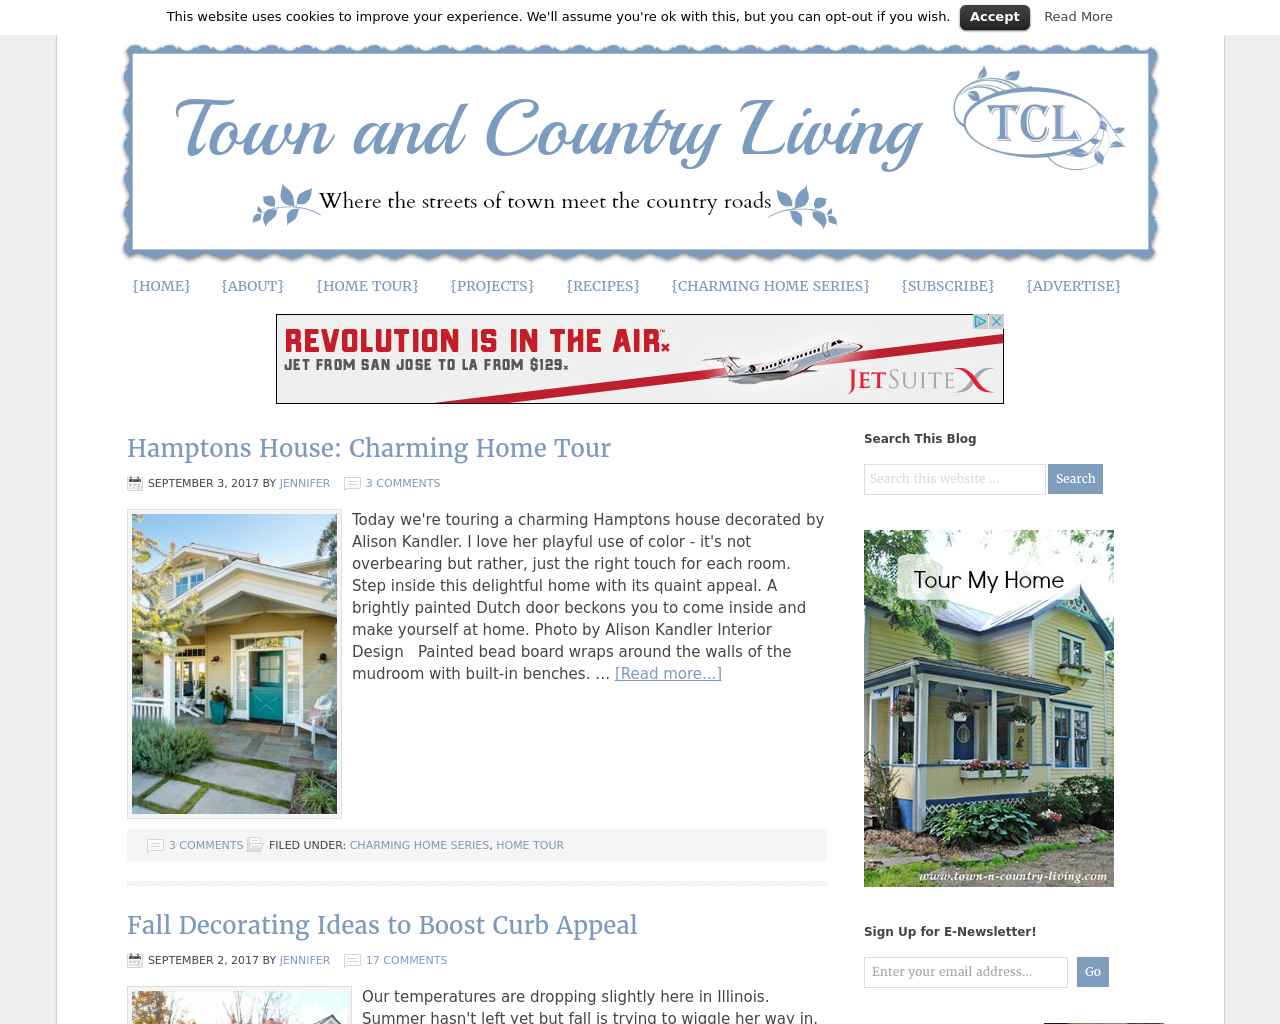 Towns-and-Country-Living-Advertising-Reviews-Pricing